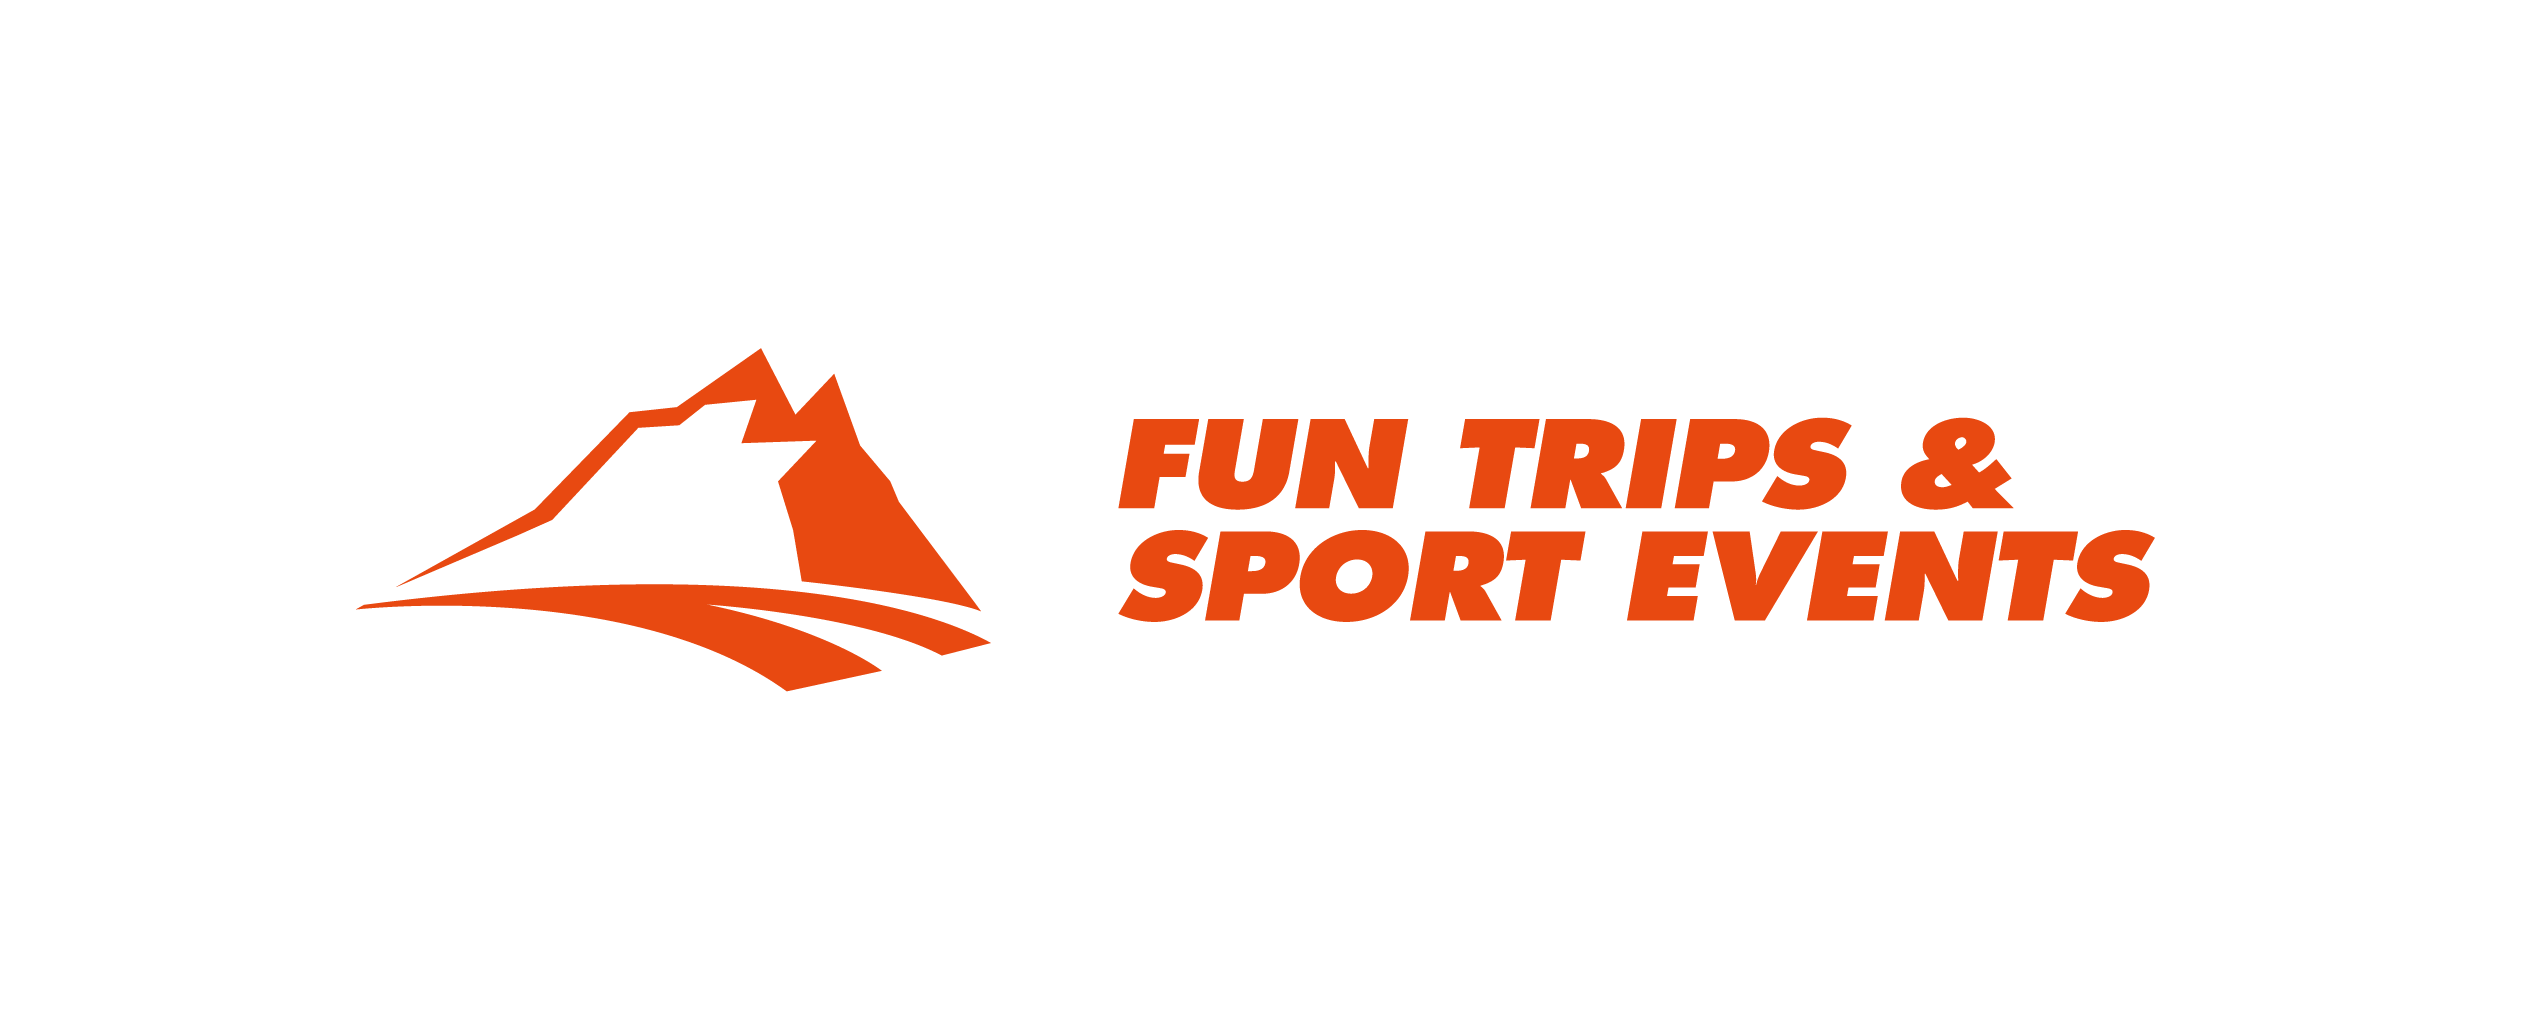 Fun Trips & Sport Events